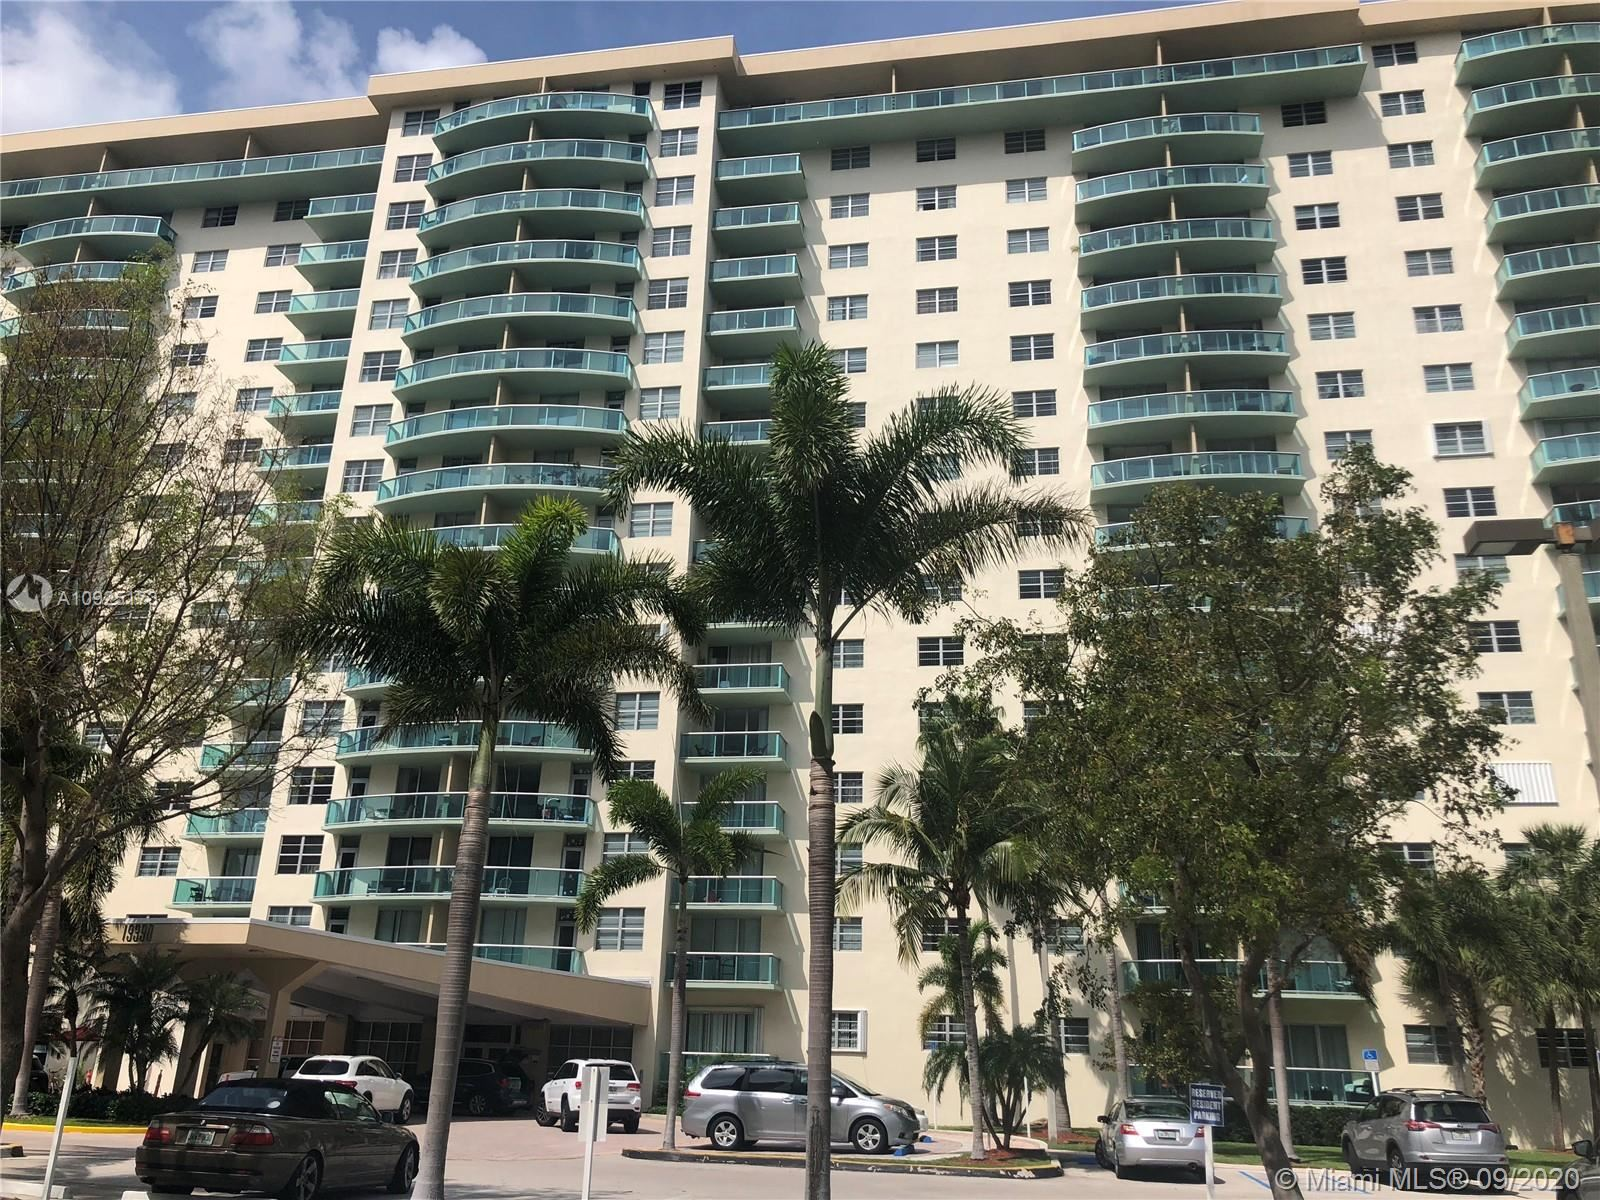 19390 Collins Ave #406, Sunny Isles, FL 33160 - #: A10925173